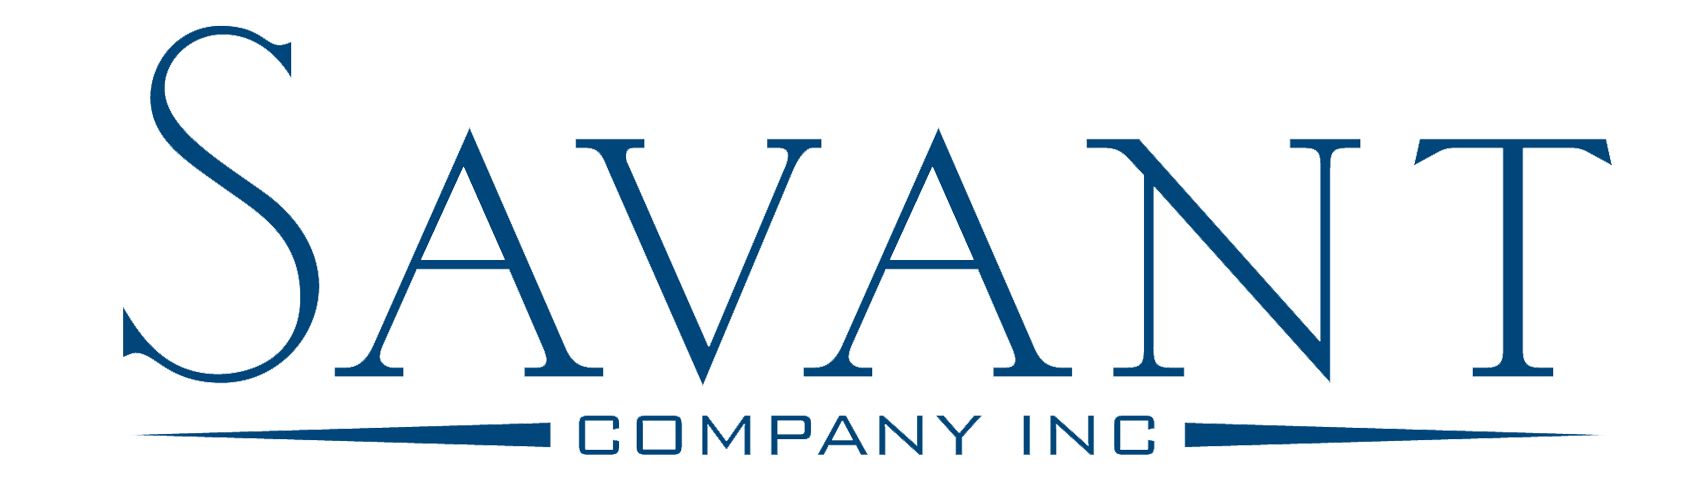 Savant Company Inc.